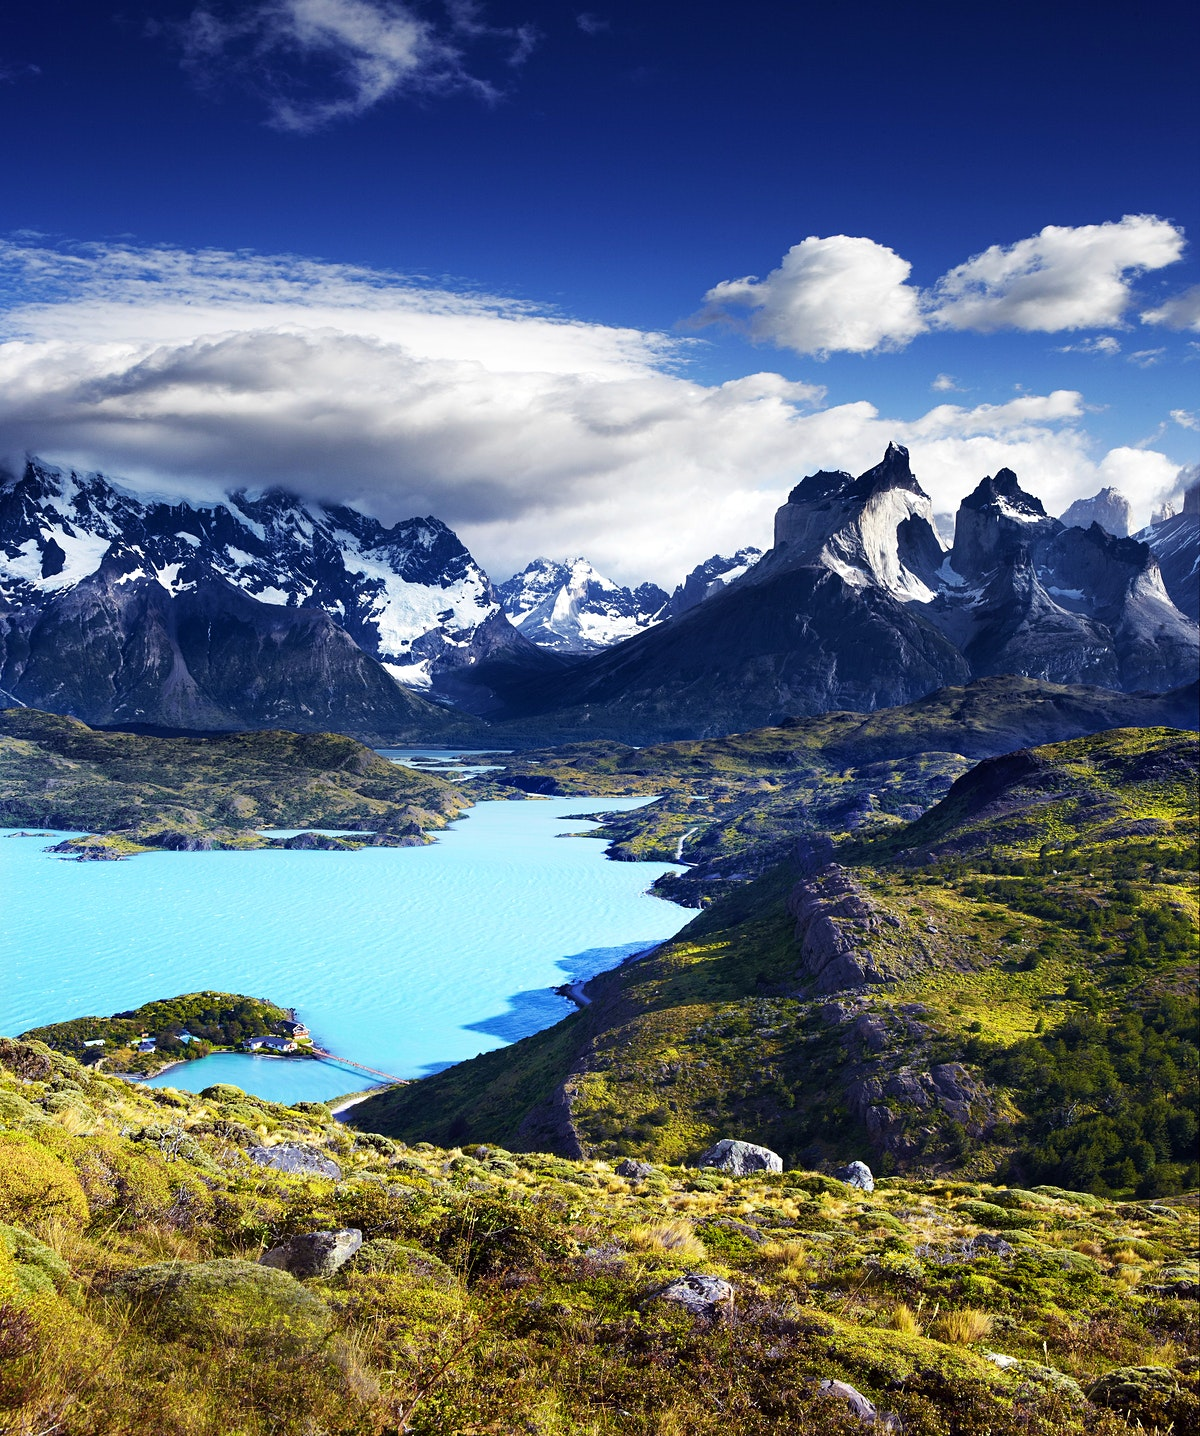 patagonia travel argentina lonely planet - HD1024×1024